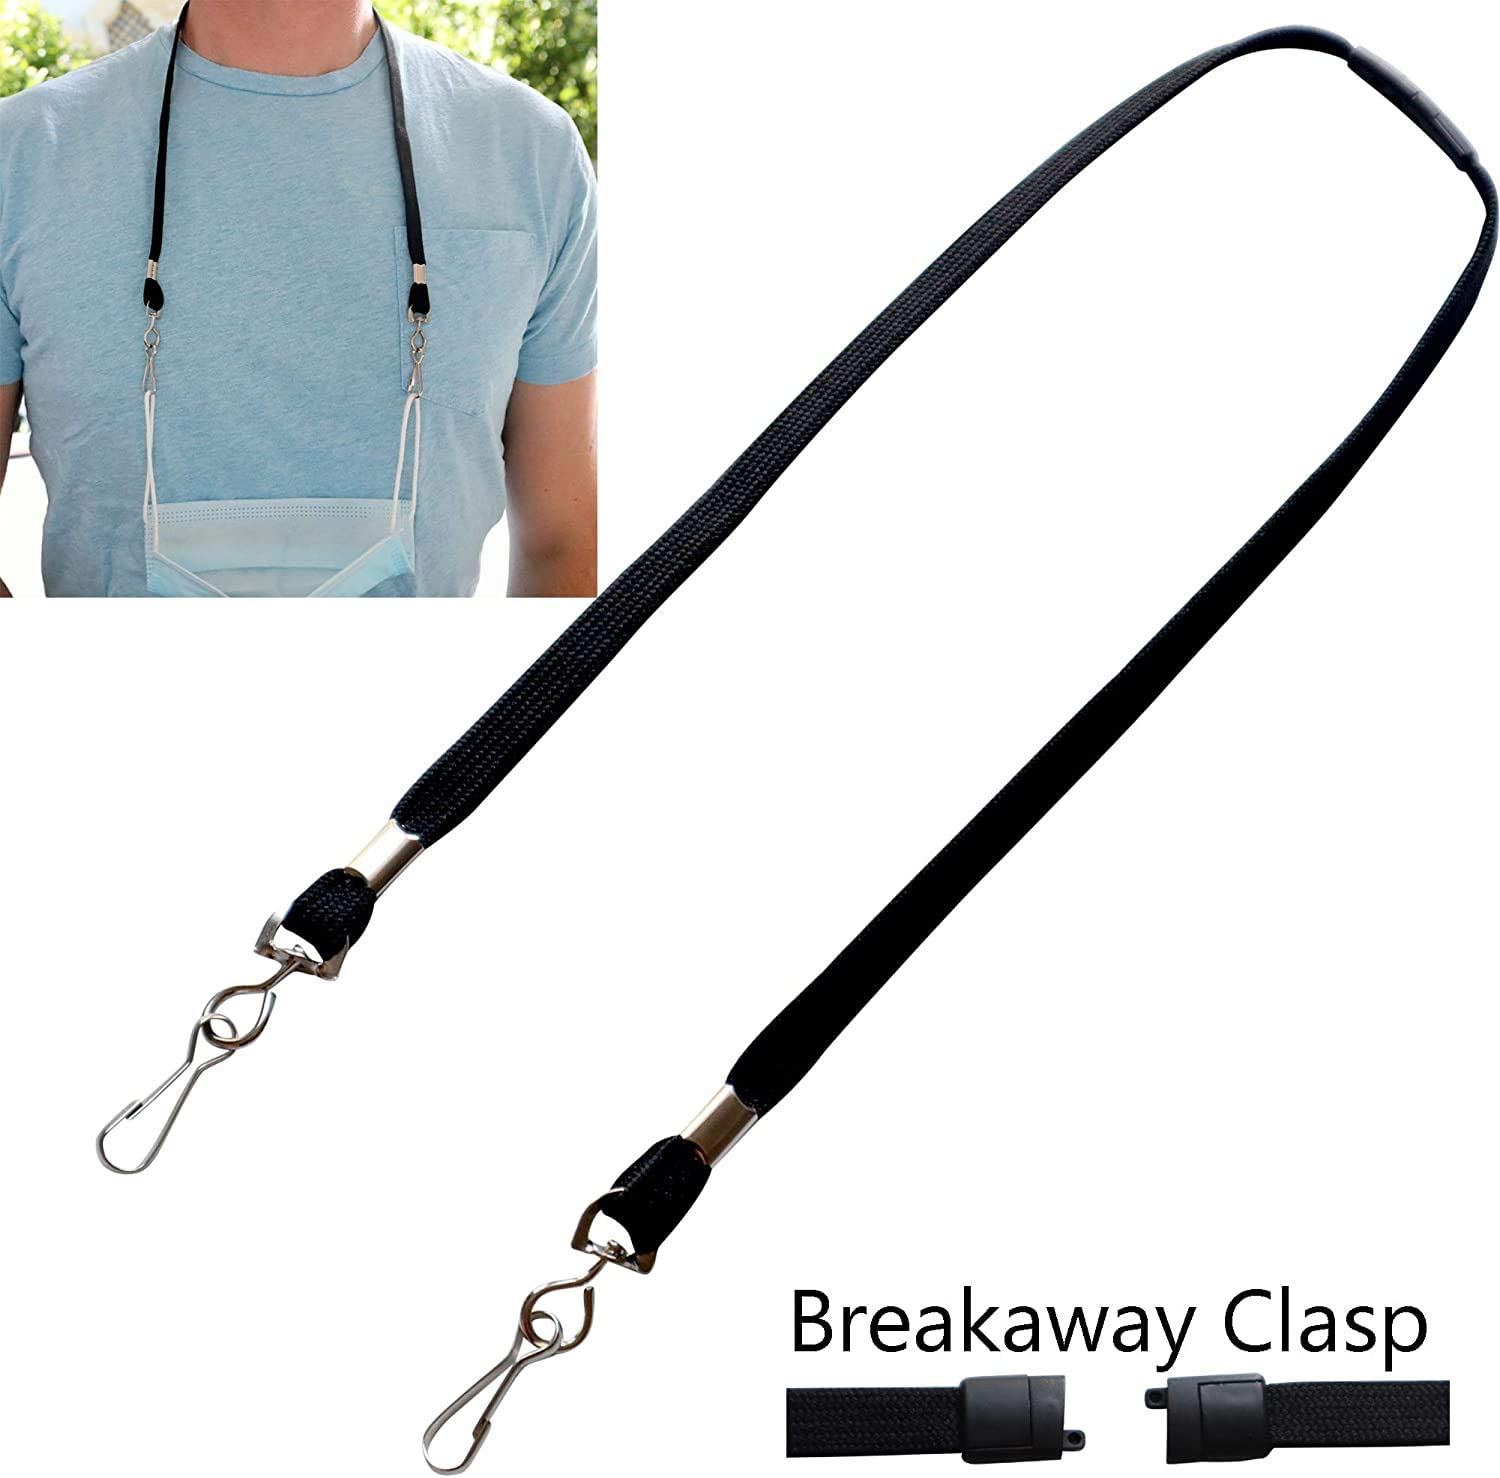 2 Pack - Face Mask Lanyard with Safety Breakaway - Adult Size Length with Quick Release Break Away Clasp - Facemask Holder/Hanger & Ear Saver w/J Clips - Great for Teachers by Specialist ID (Black)